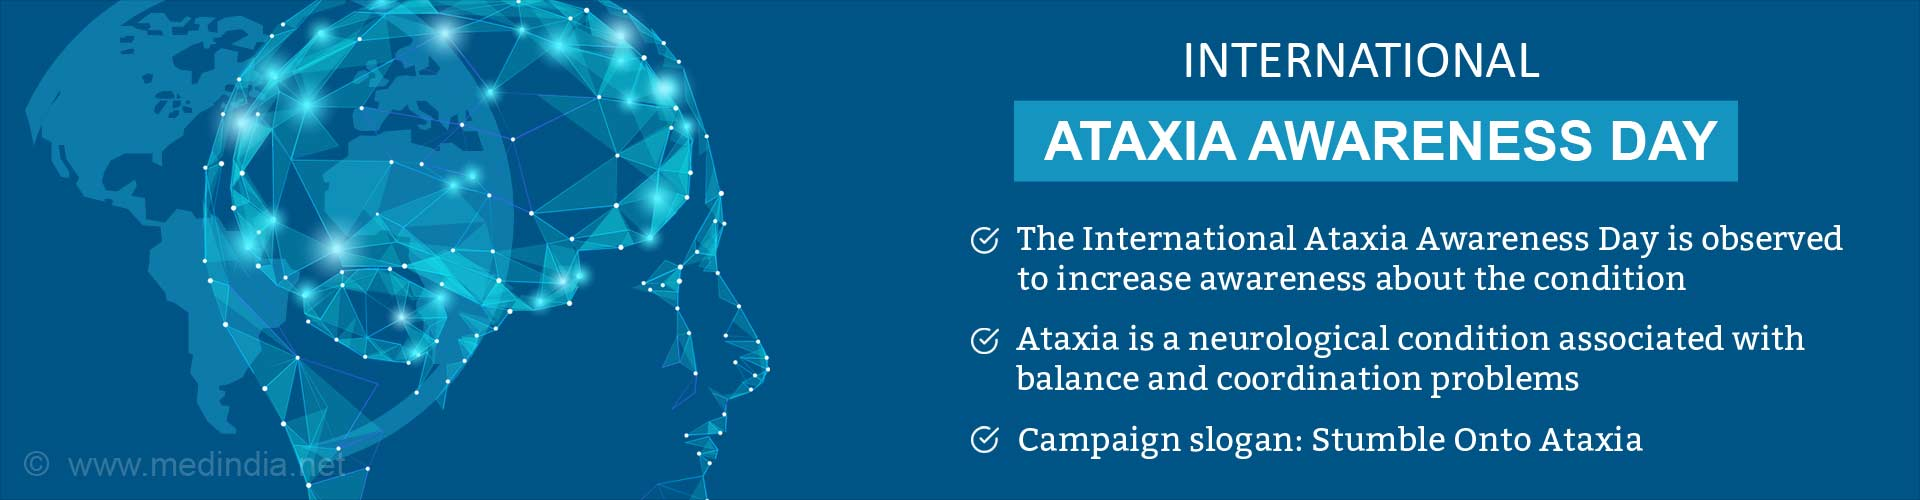 International Ataxia Awareness Day: Ataxia Symptoms